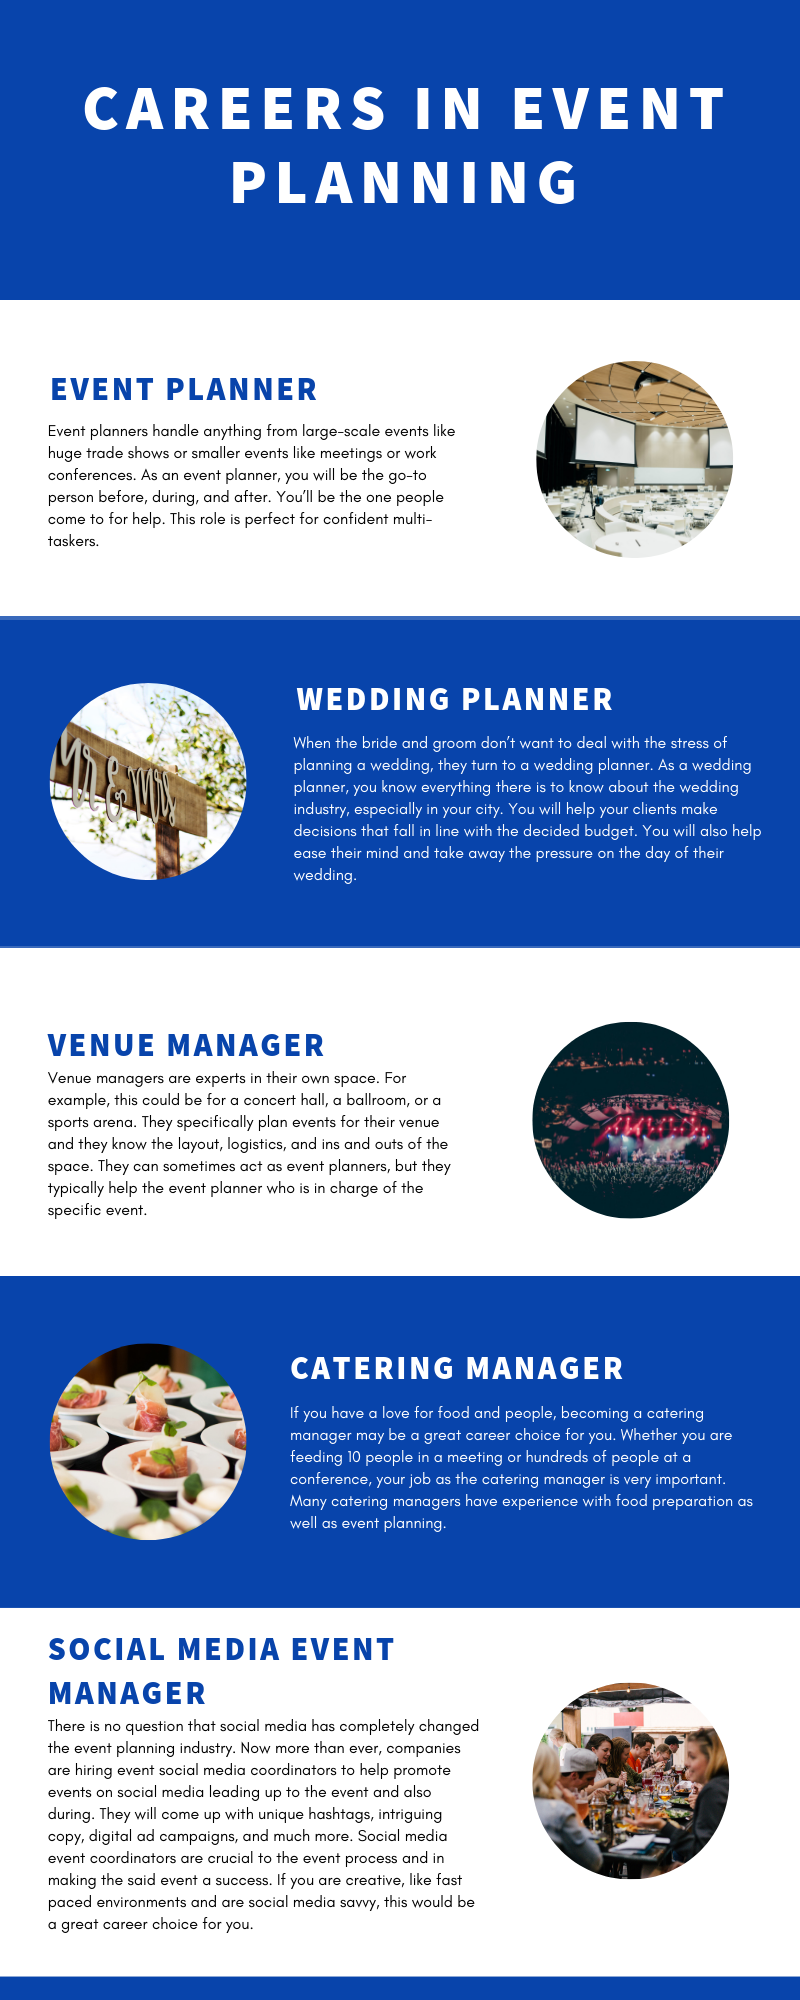 Careers in Event Planning - Infographic